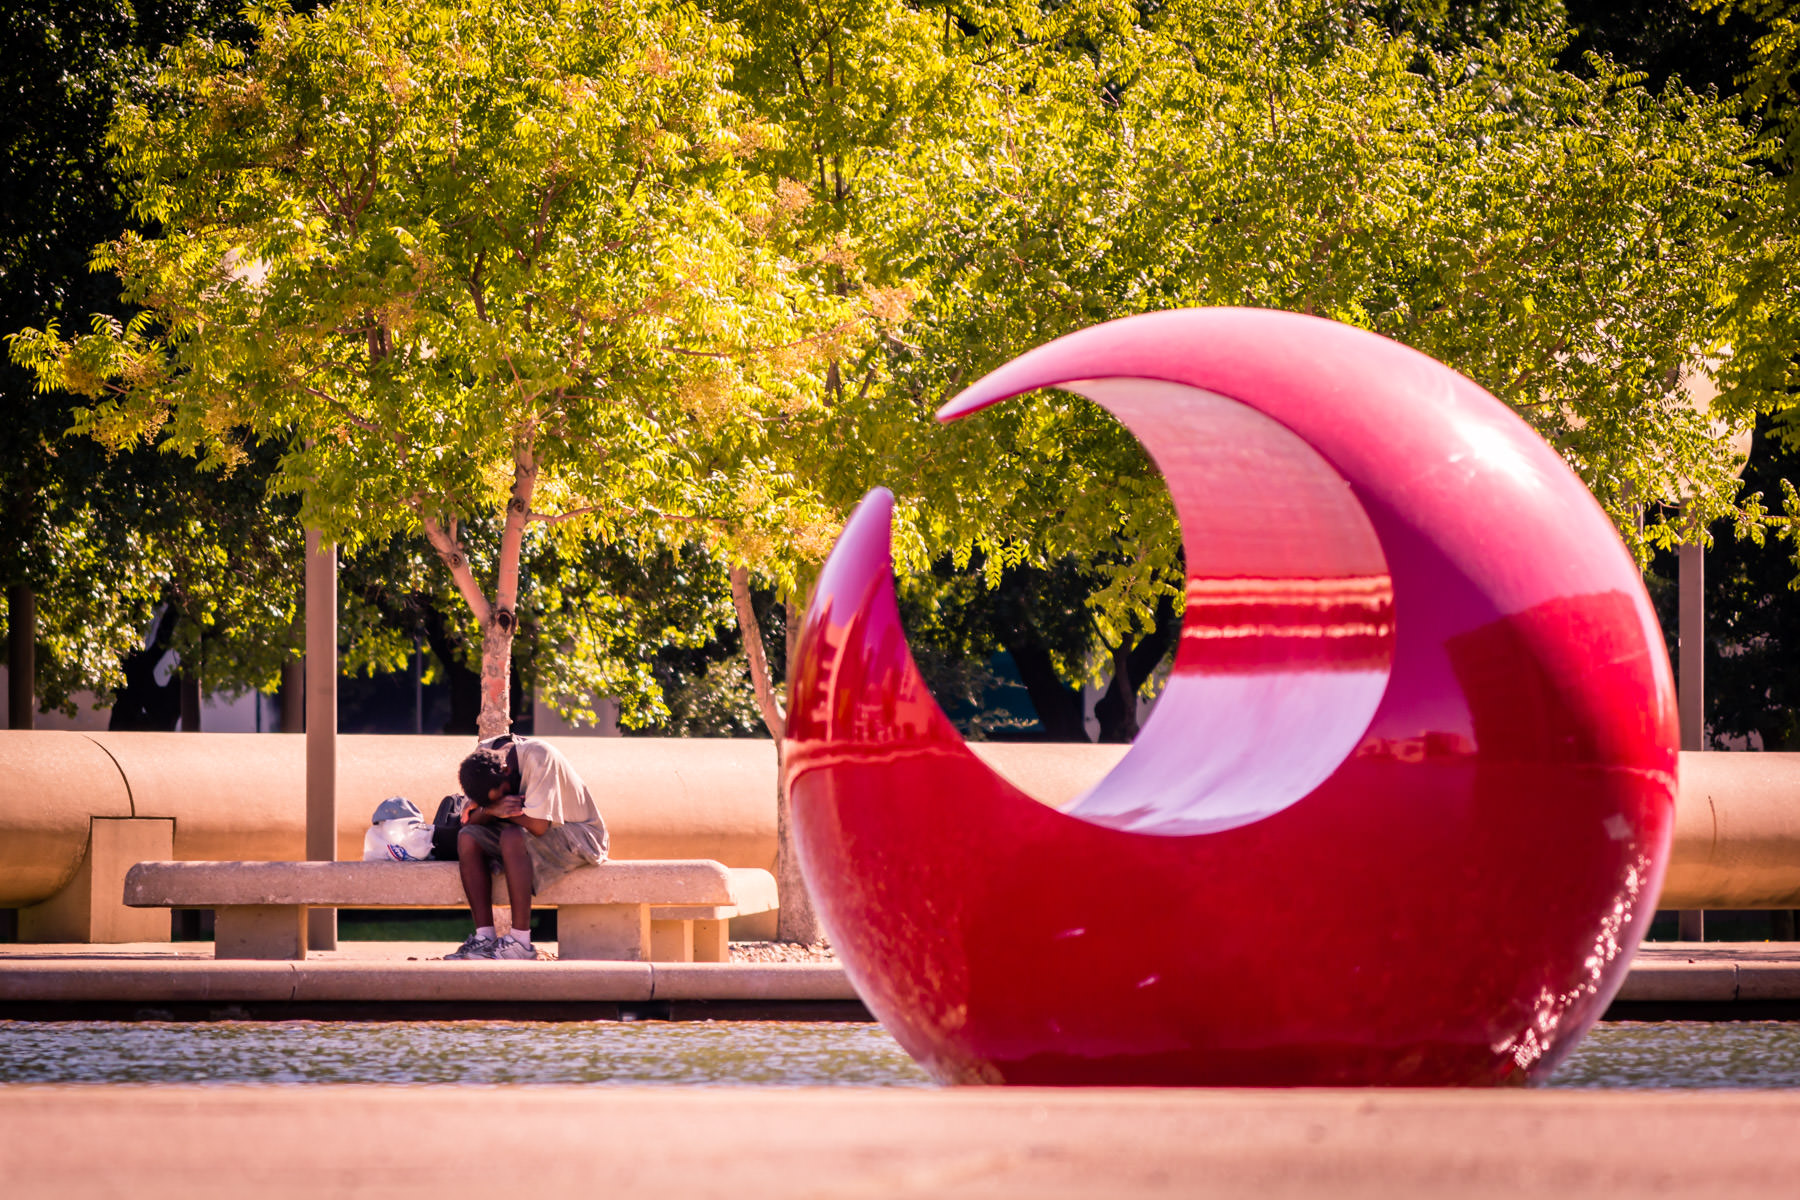 A homeless person seeks respite from the Texas sun while artist Marta Pan's Floating Sculpture reflects the cityscape in front of Dallas City Hall.